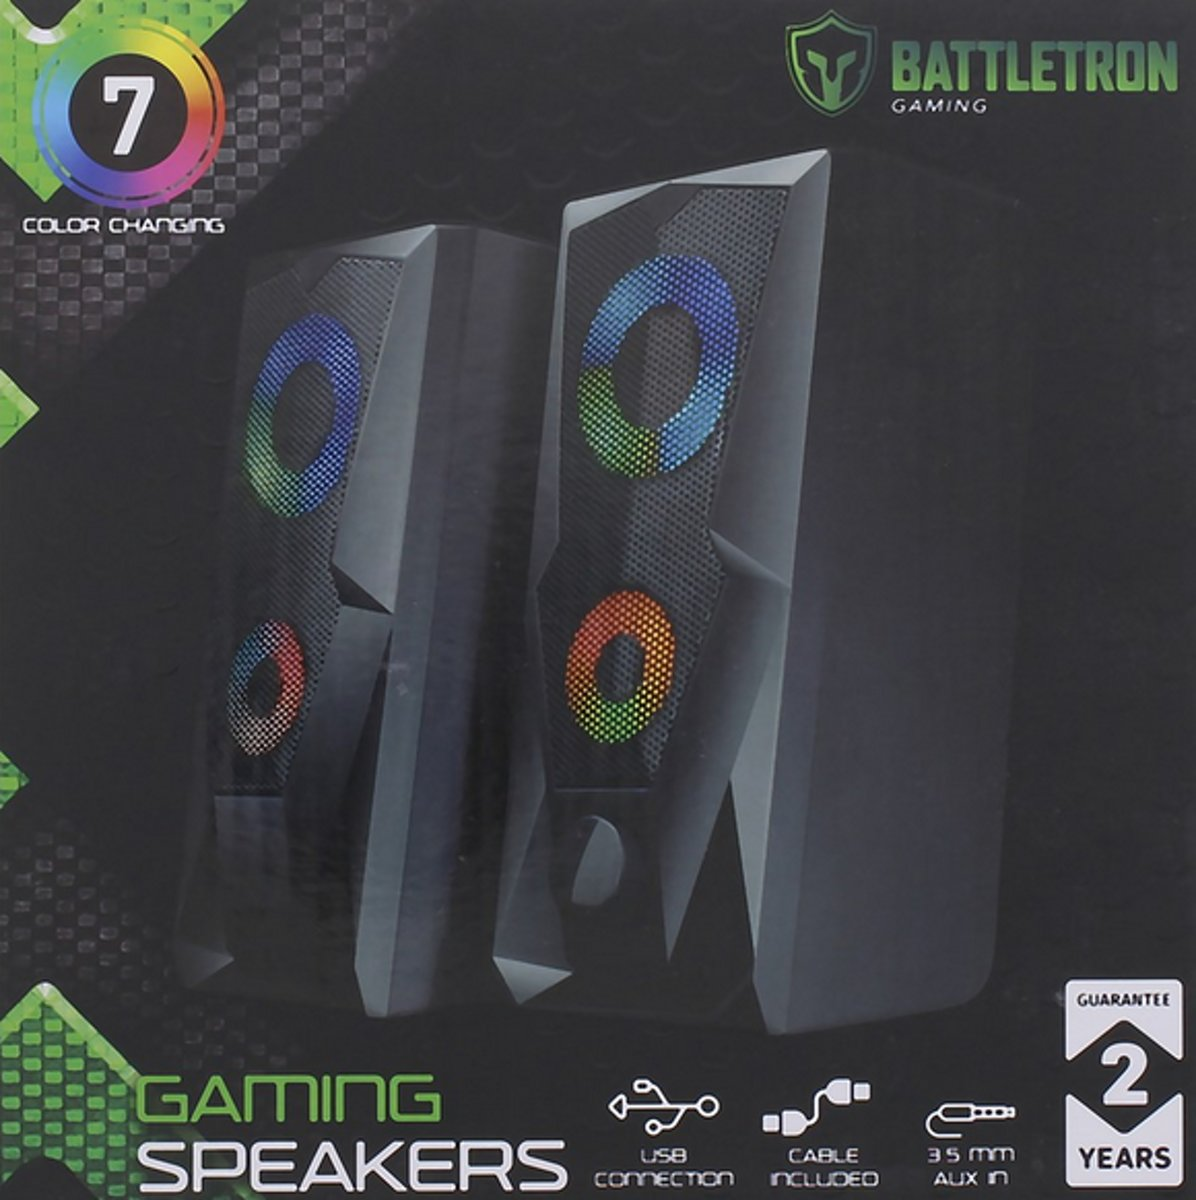 battletron gaming speakers - 7color changing